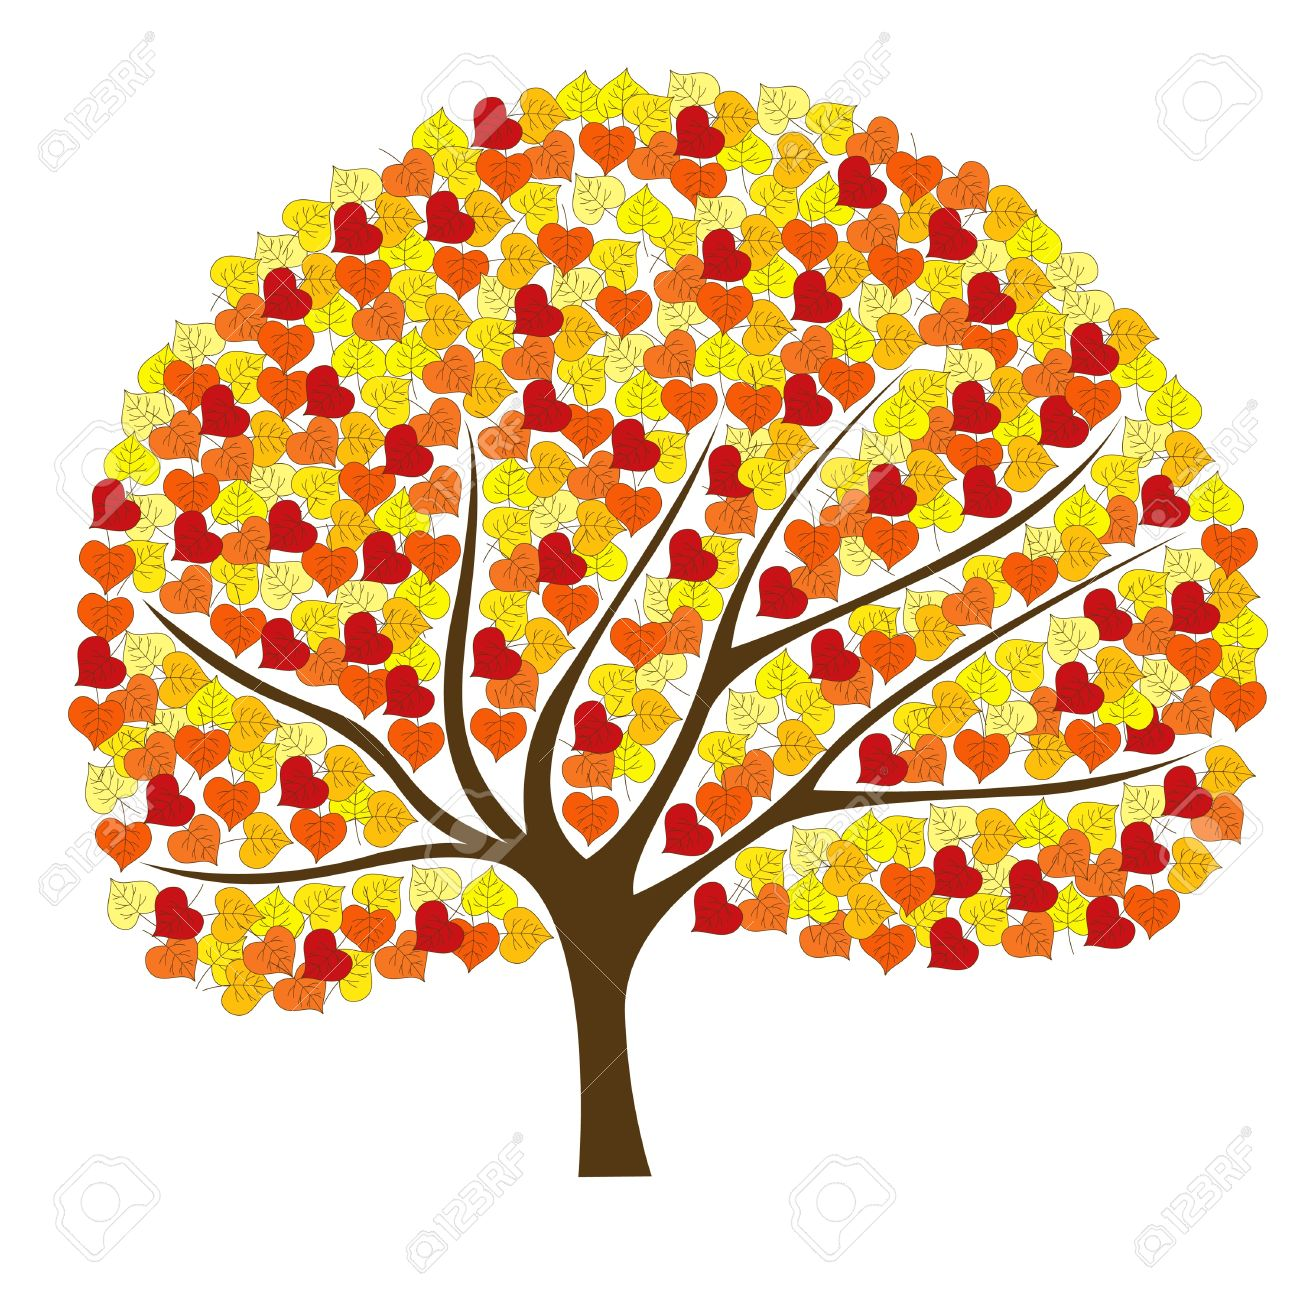 Cute Fall Tree Clipart Cute Fall Tree Cl-Cute Fall Tree Clipart Cute Fall Tree Clipart-7